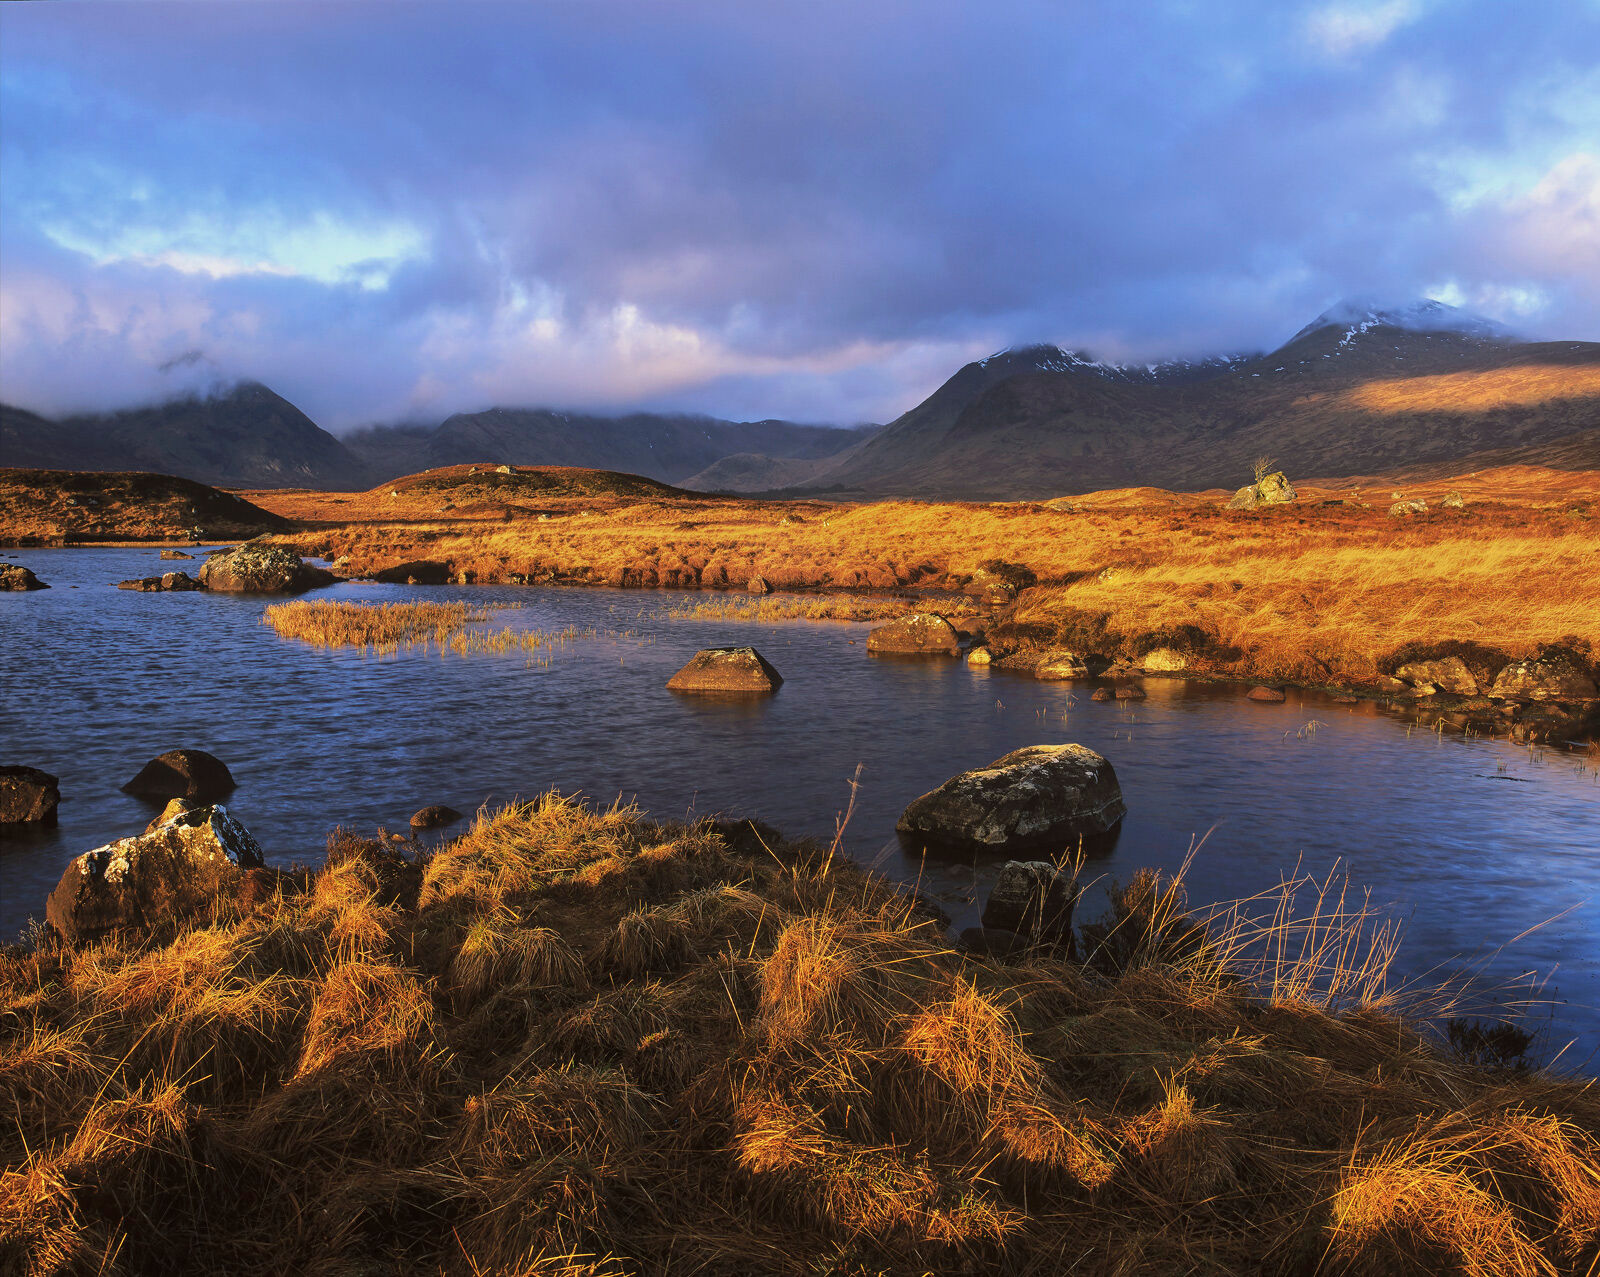 Morning Gold Stainge, Loch Na Stainge, Rannoch Moor, Scotland, autumnal, sunlight, deep, blue, cloudy, sky, intensity, r, photo